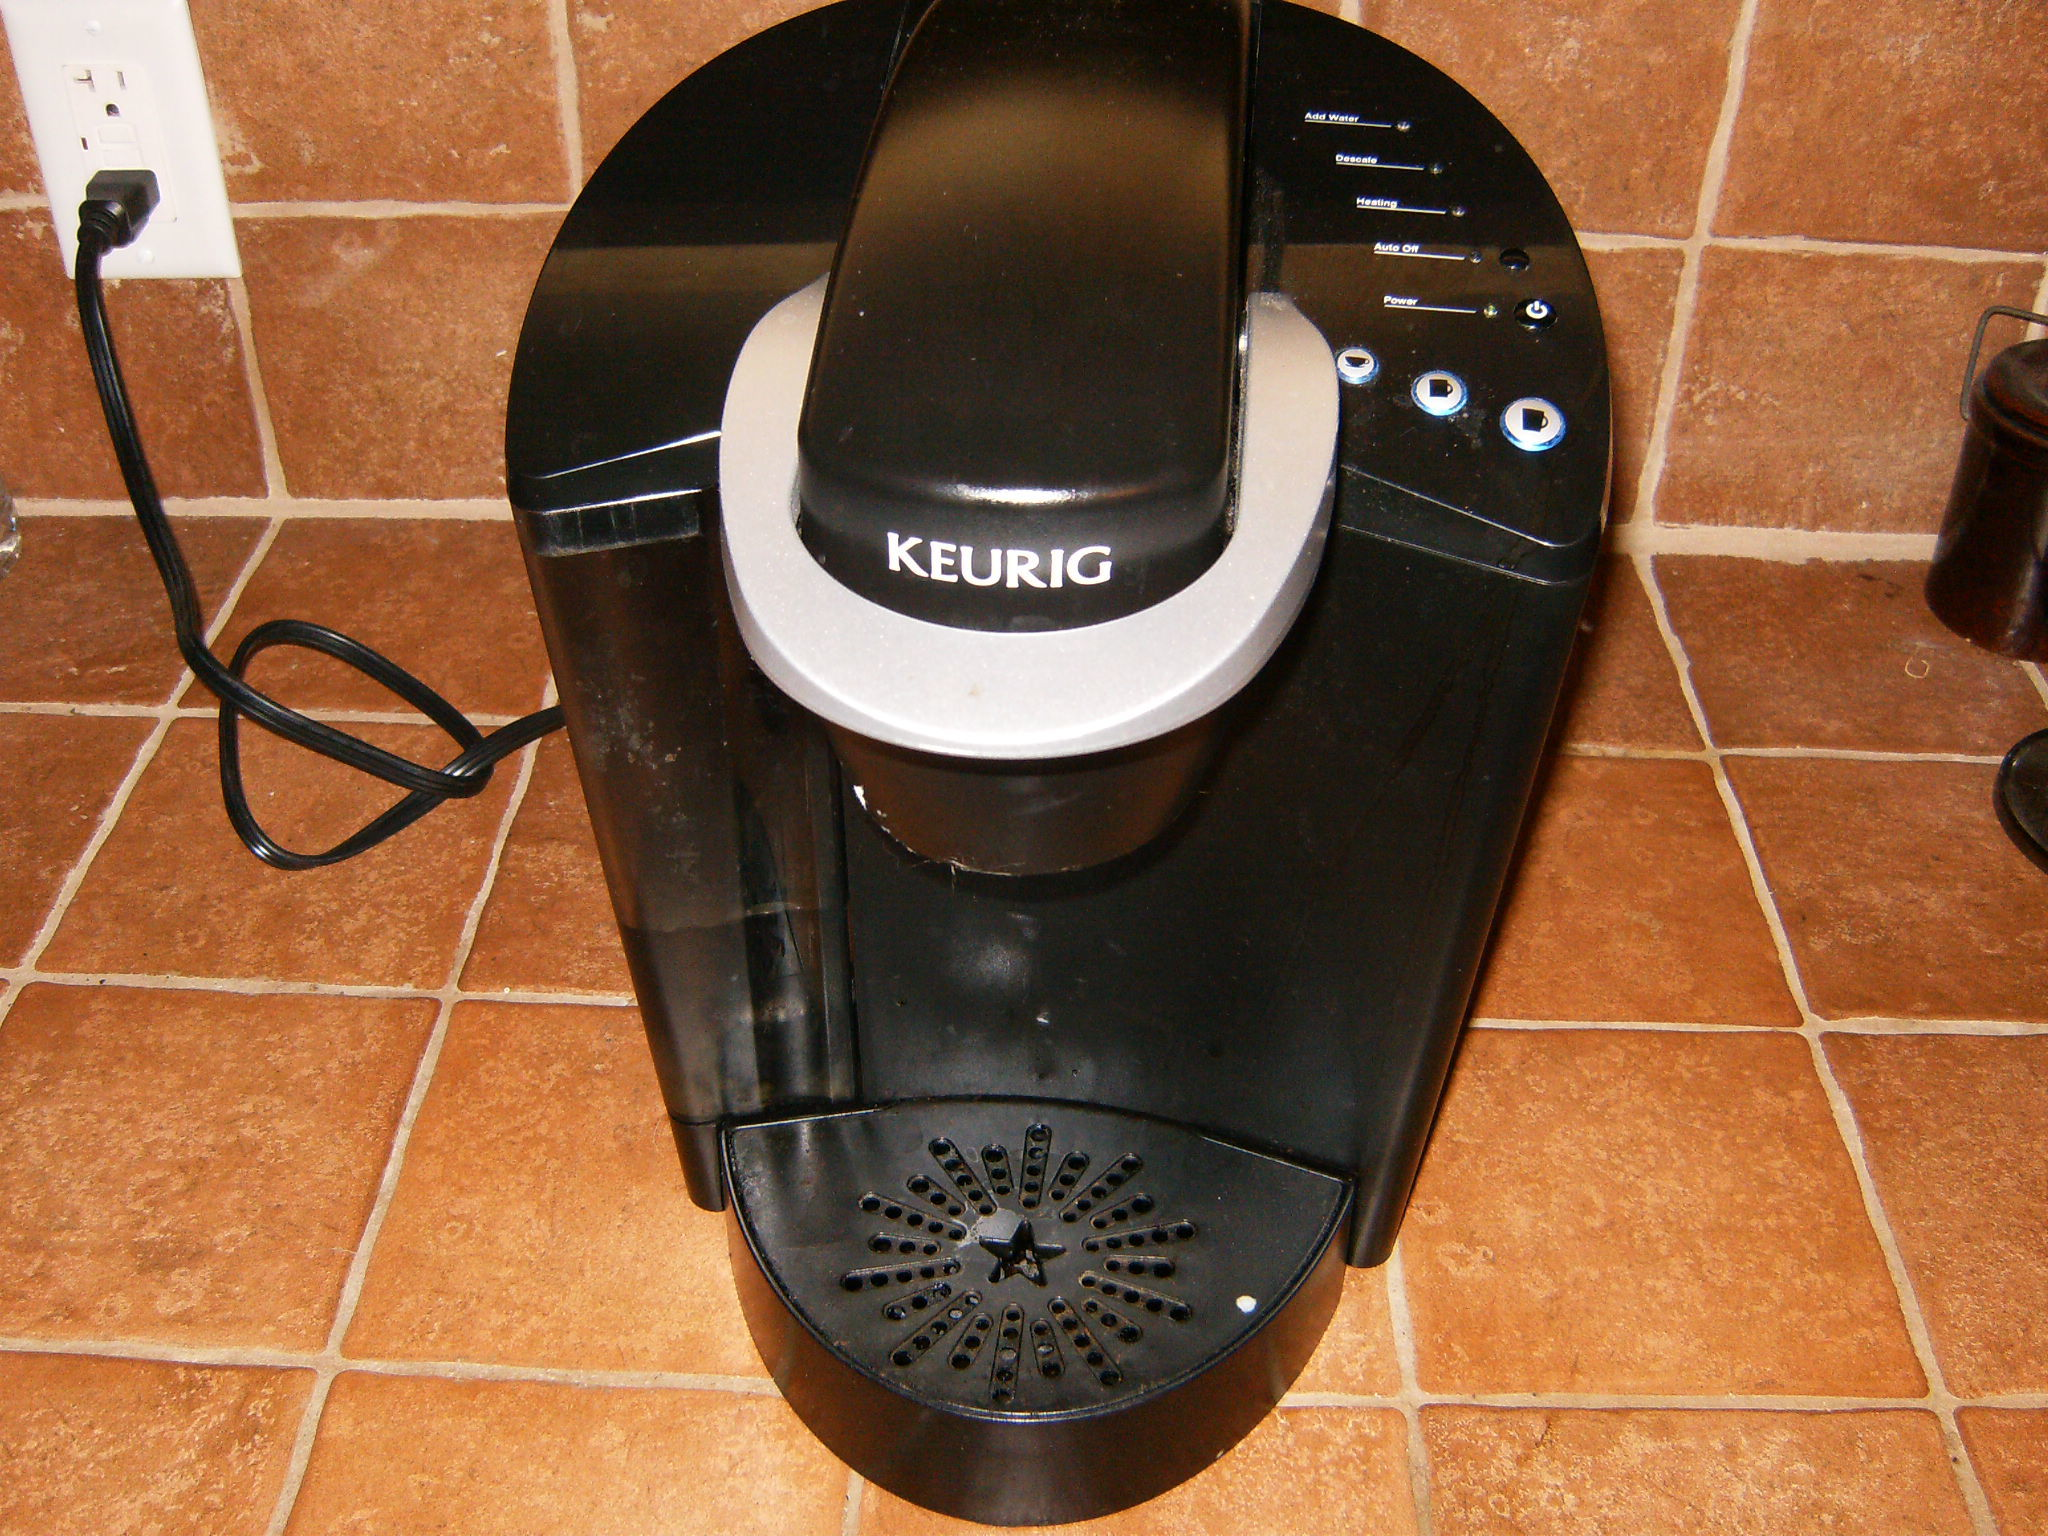 Fix K Cup Coffee Maker : How to open and clean Keurig Coffee Maker - iFixit